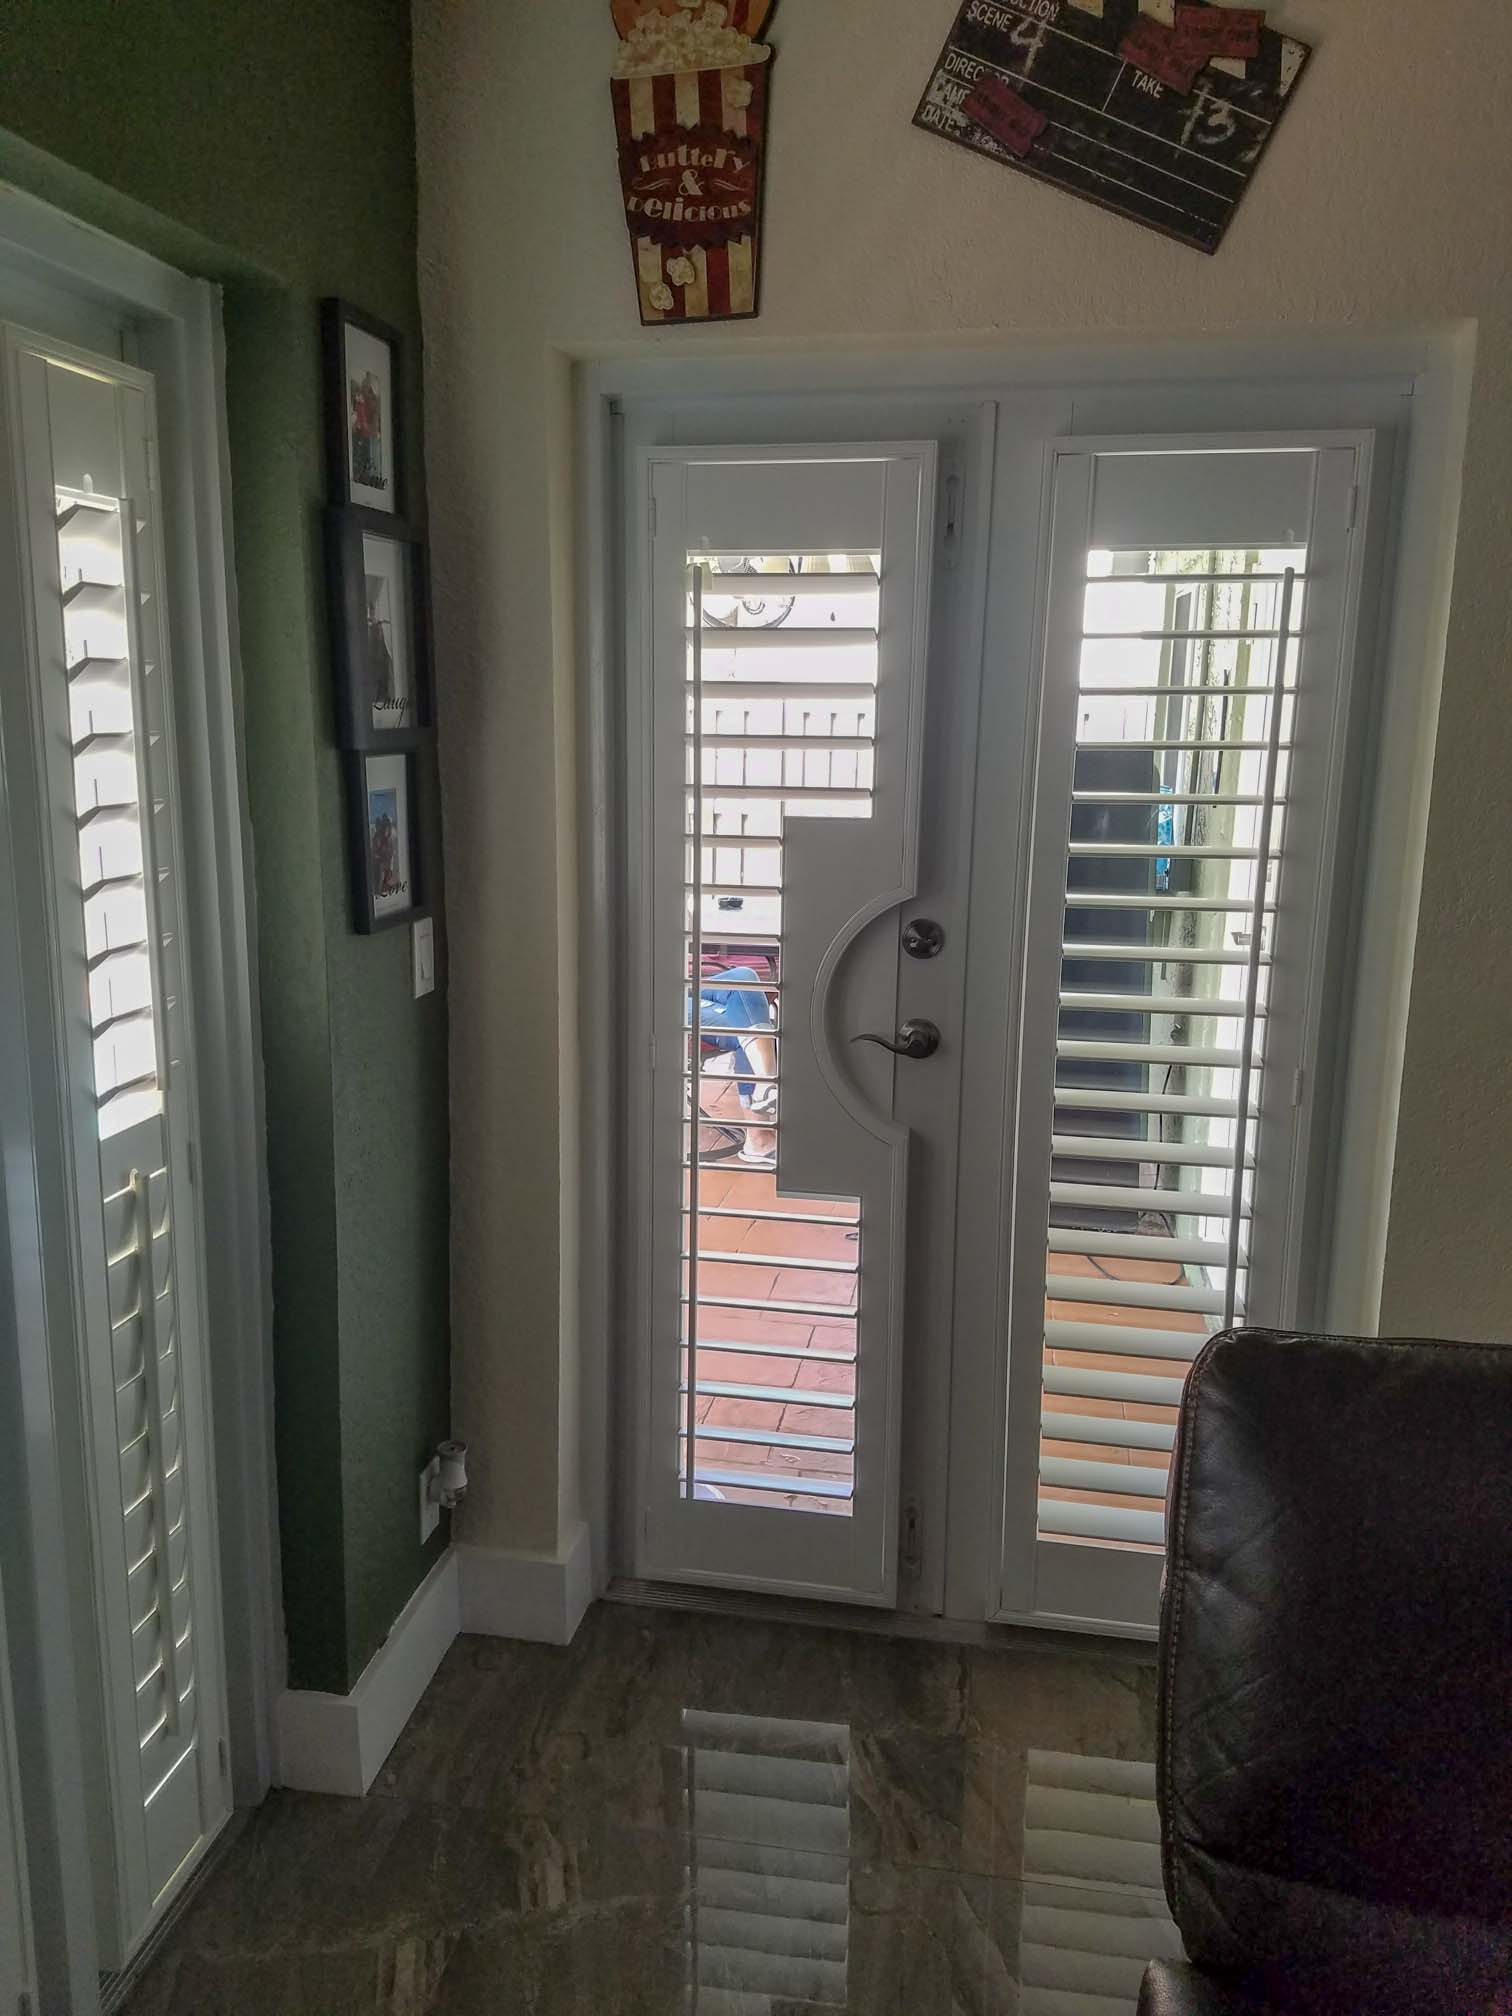 plantation shutters gallery PLANTATION SHUTTERS GALLERY 20171013 140749